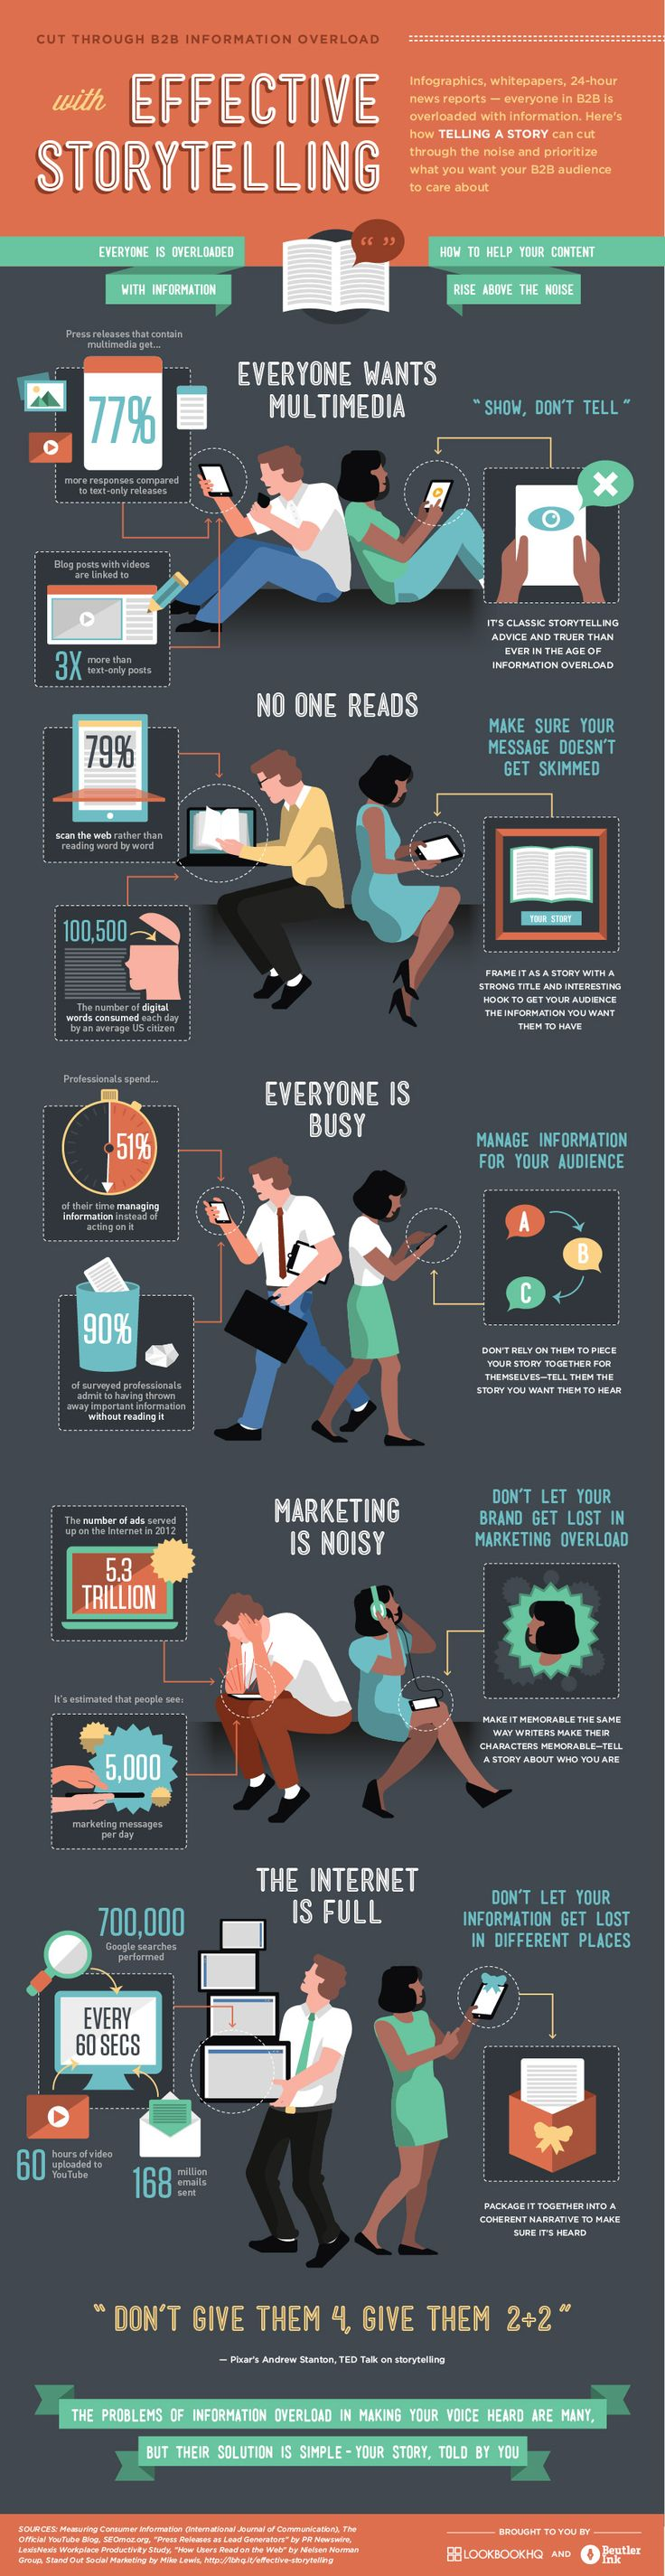 Infographic on Effective Storytelling Do you need help with content writing and marketing? Visit www.goodinklings.com